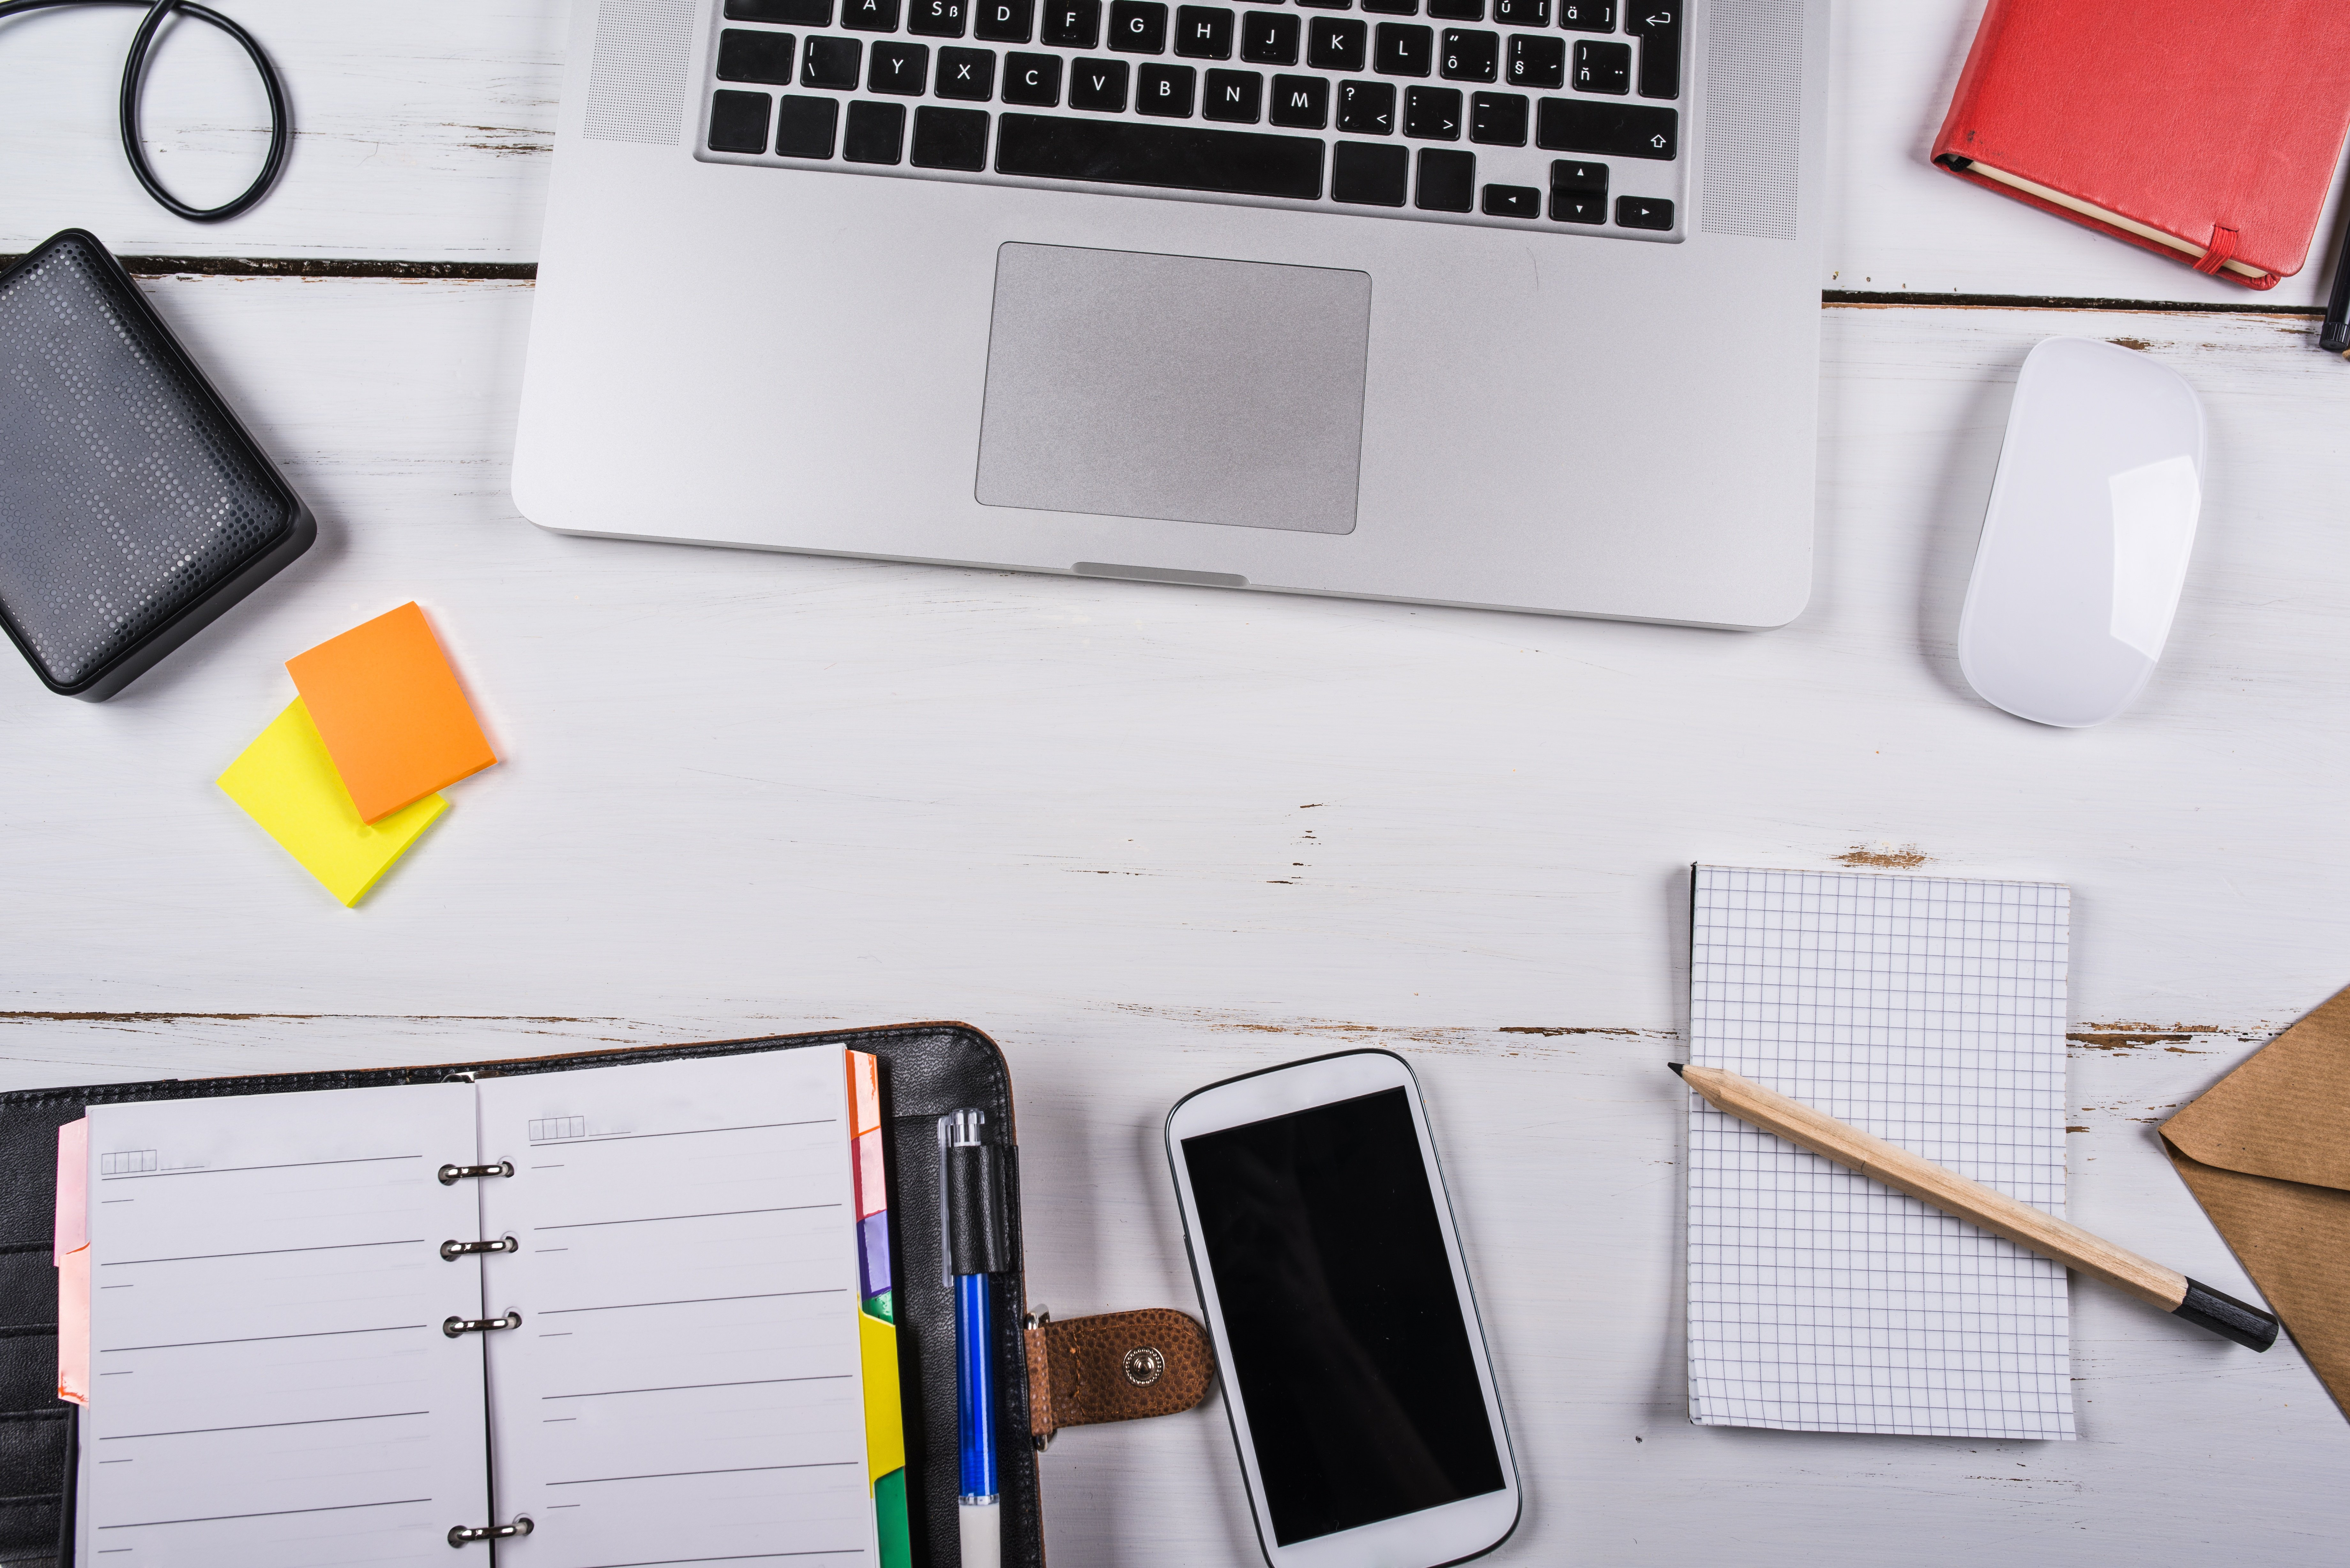 graphicstock-mix-of-office-supplies-and-gadgets-on-a-white-wooden-table-background-view-from-above_BCawXHTbb.jpg